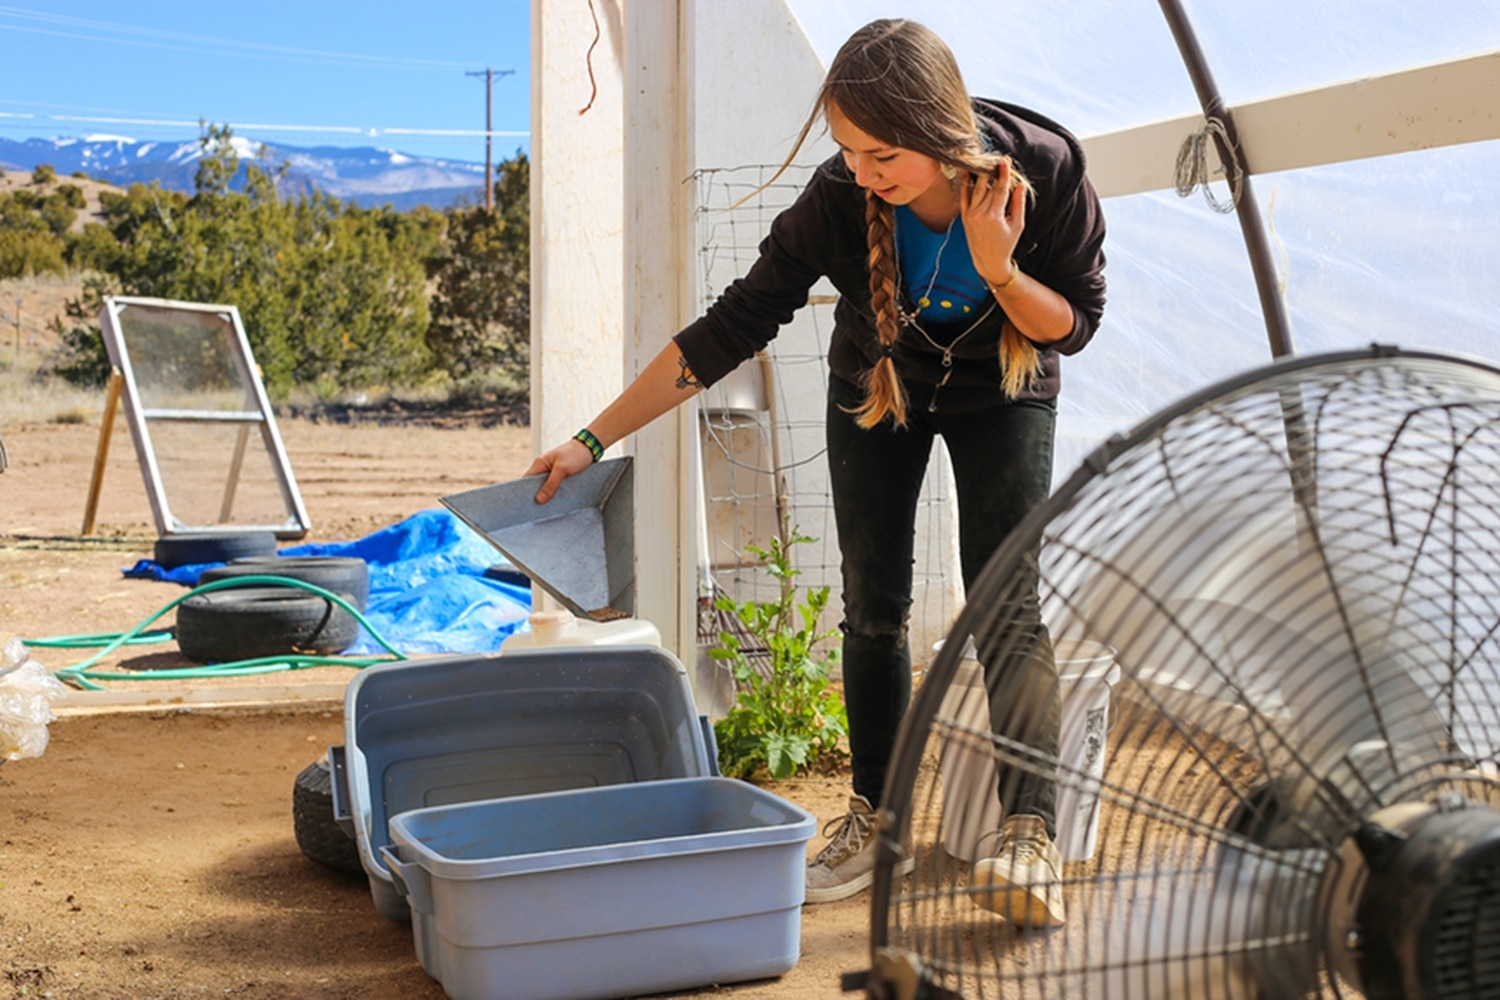 Emily Arasim demonstrates a seed sorting technique using wind—or, in this case, a fan.